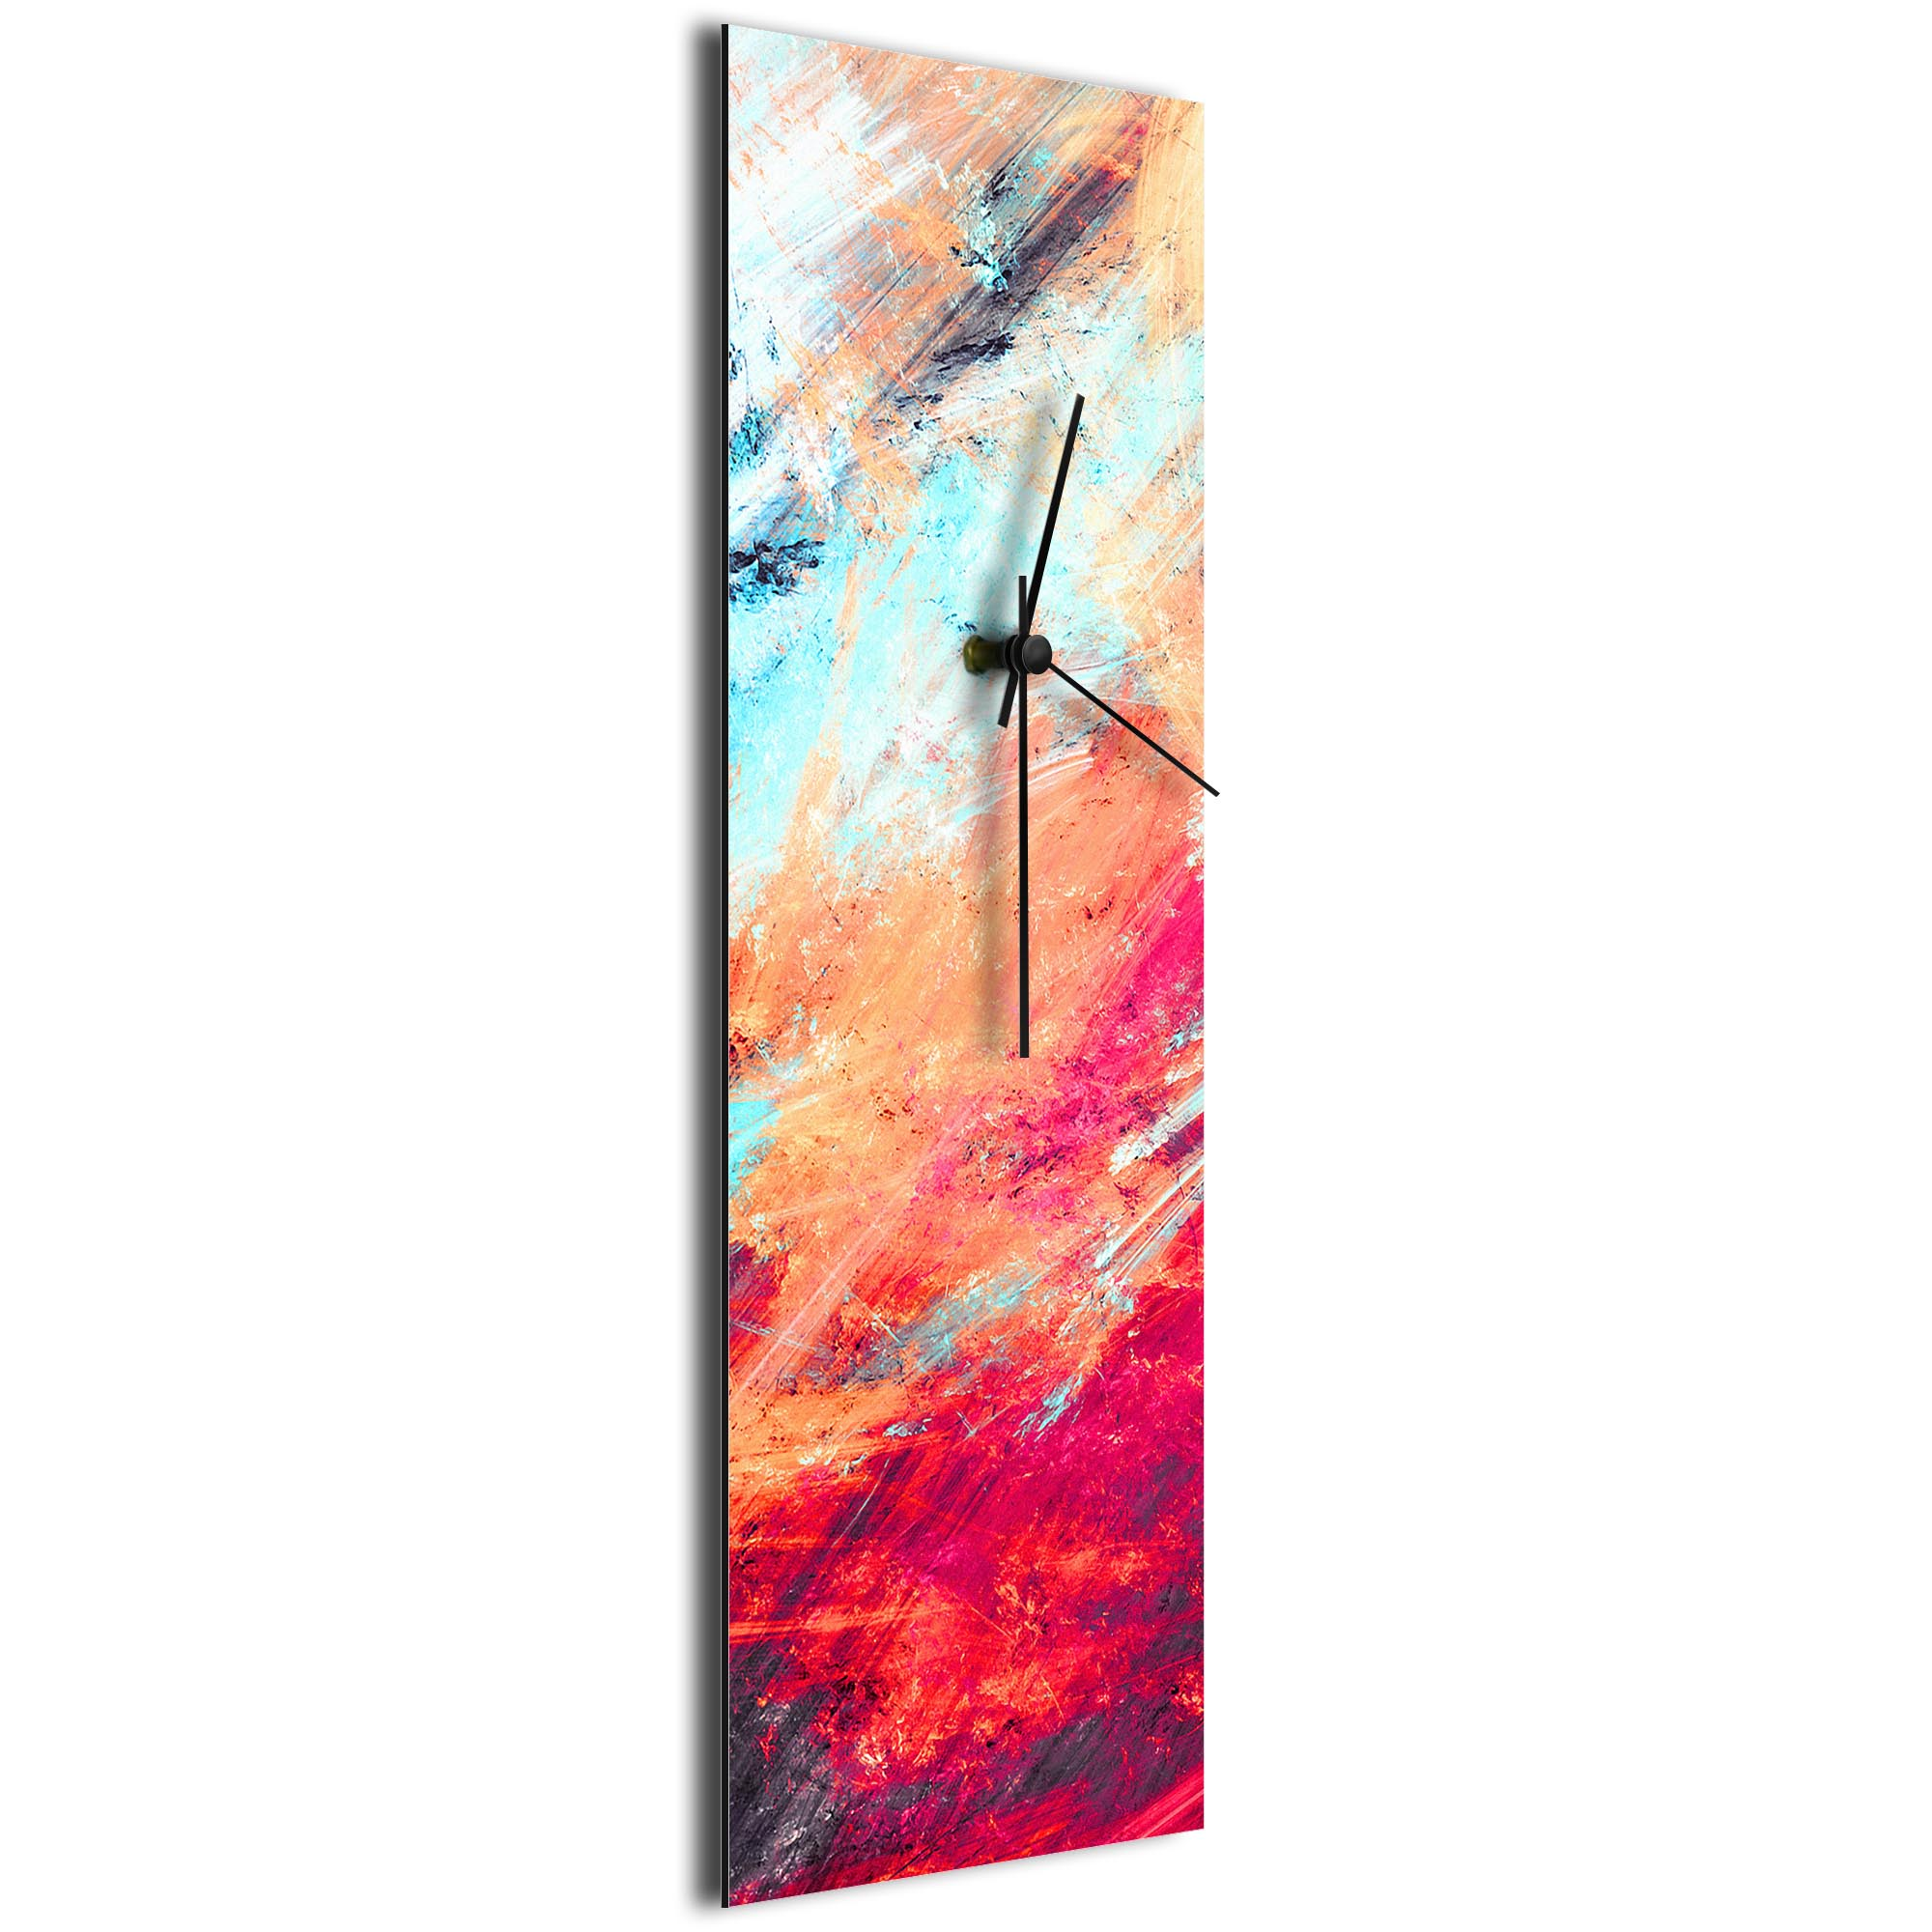 Sentinal Clock v5 by NAY - Distressed Modern Wall Clock - Image 2